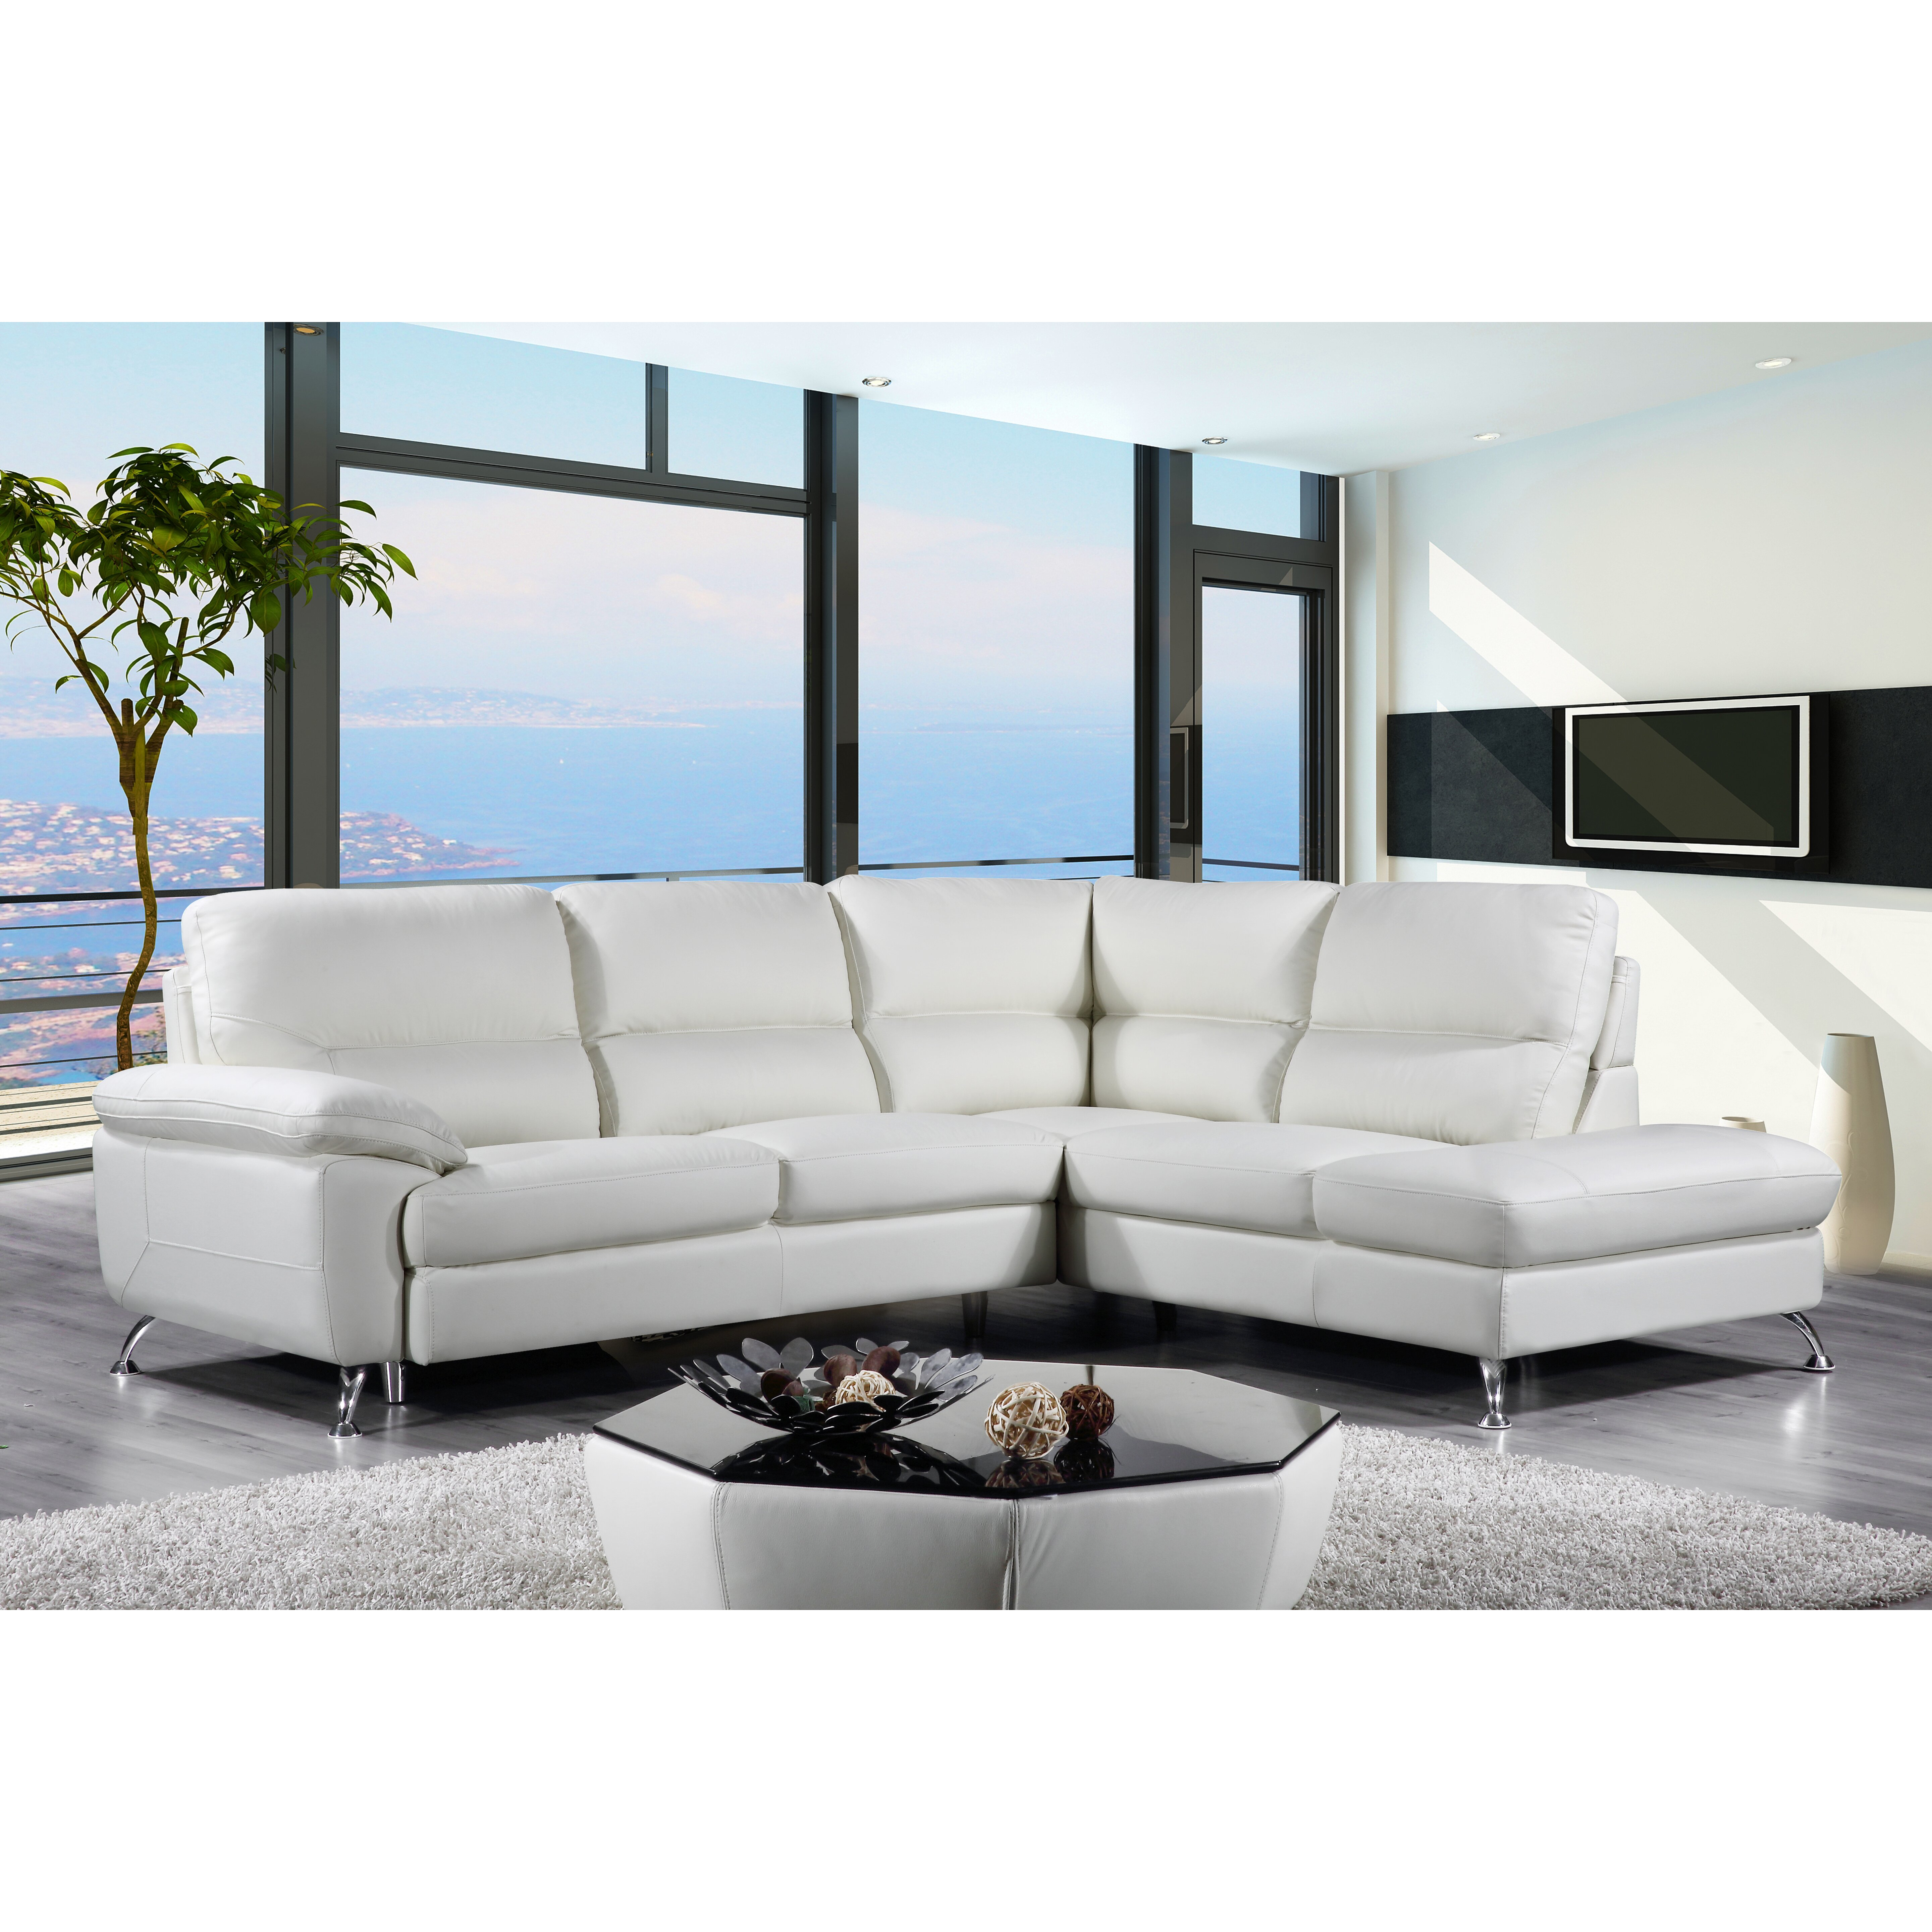 Sectional Sofa Miami Cortesi Home Miami Sectional Wayfair  sc 1 st  Athydirectory : miami sectional sofa - Sectionals, Sofas & Couches